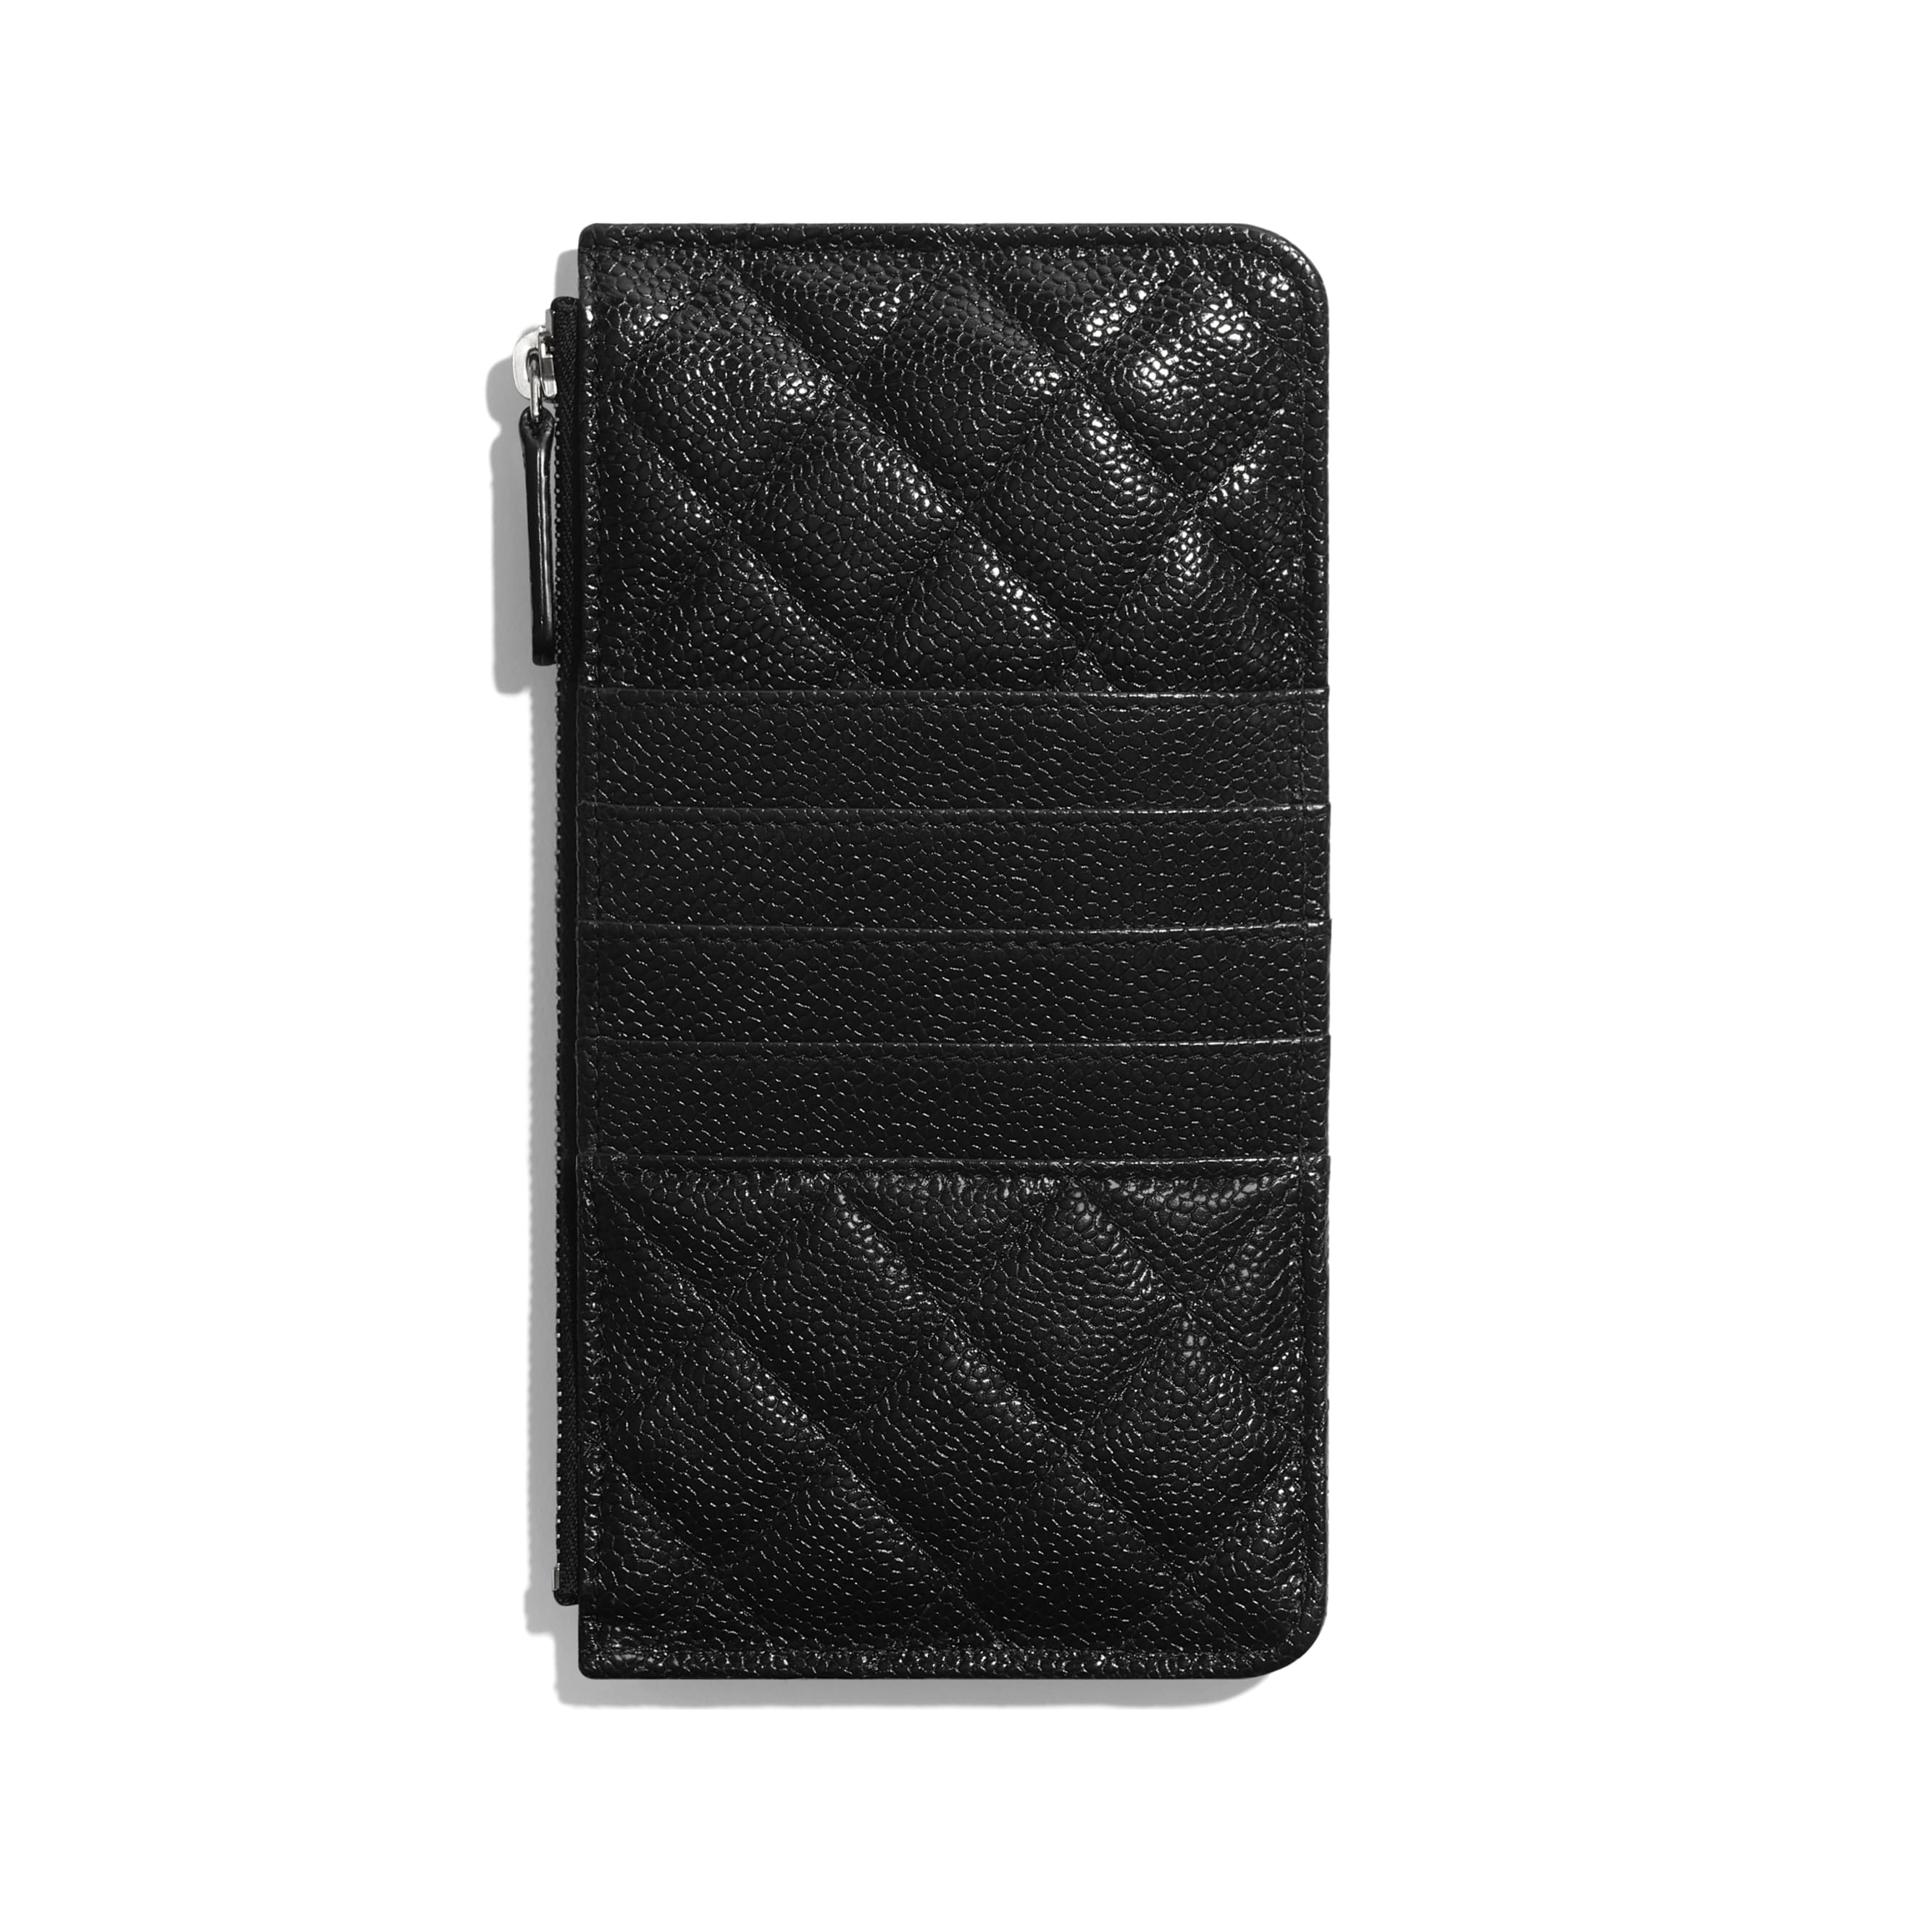 Phone & Card Holder - Black - Grained Calfskin & Lacquered Metal - CHANEL - Alternative view - see standard sized version